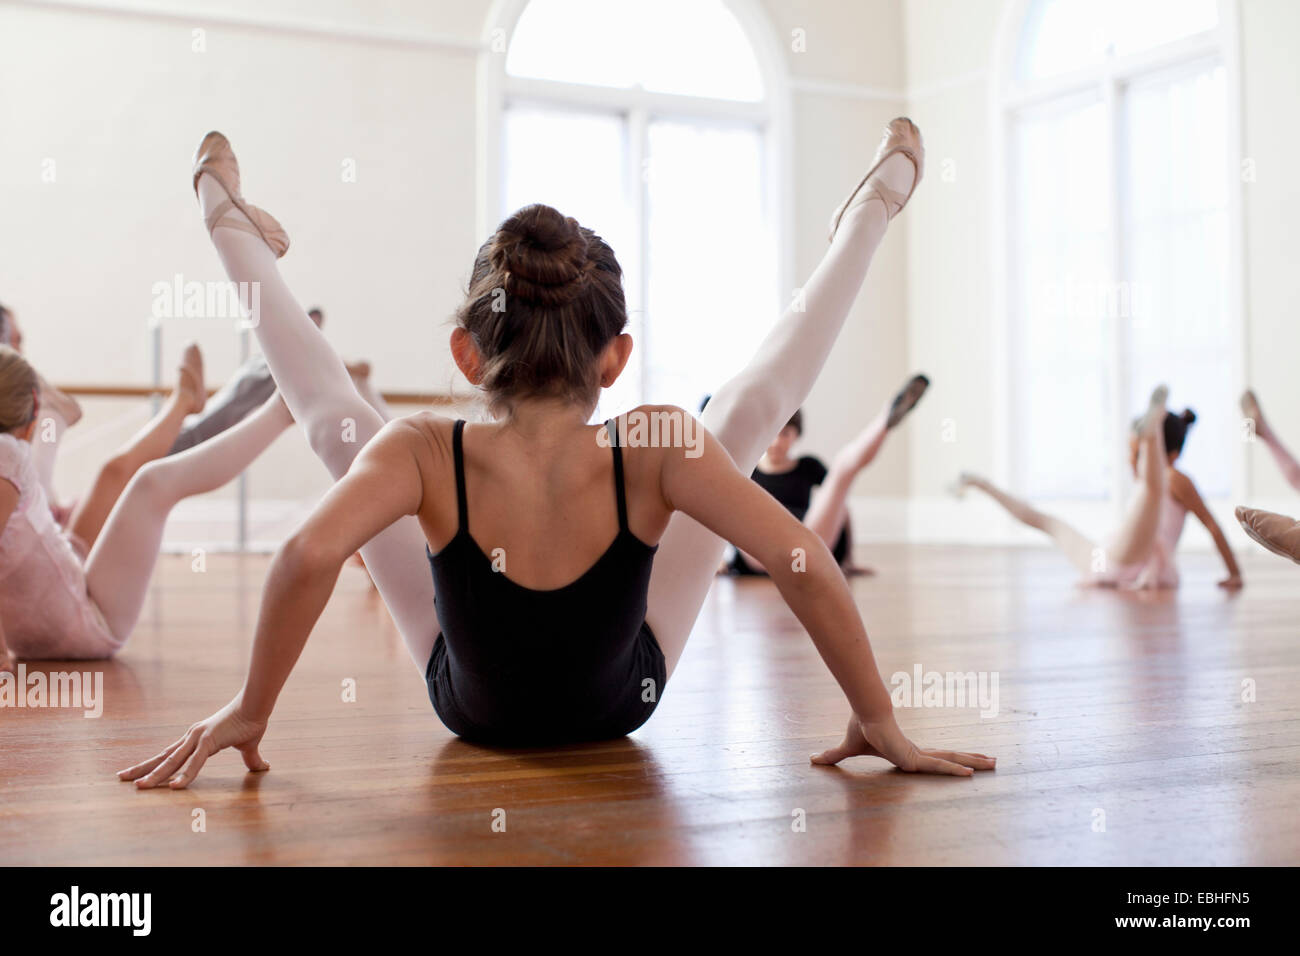 Des enfants assis sur le plancher practicing ballet in ballet school Photo Stock